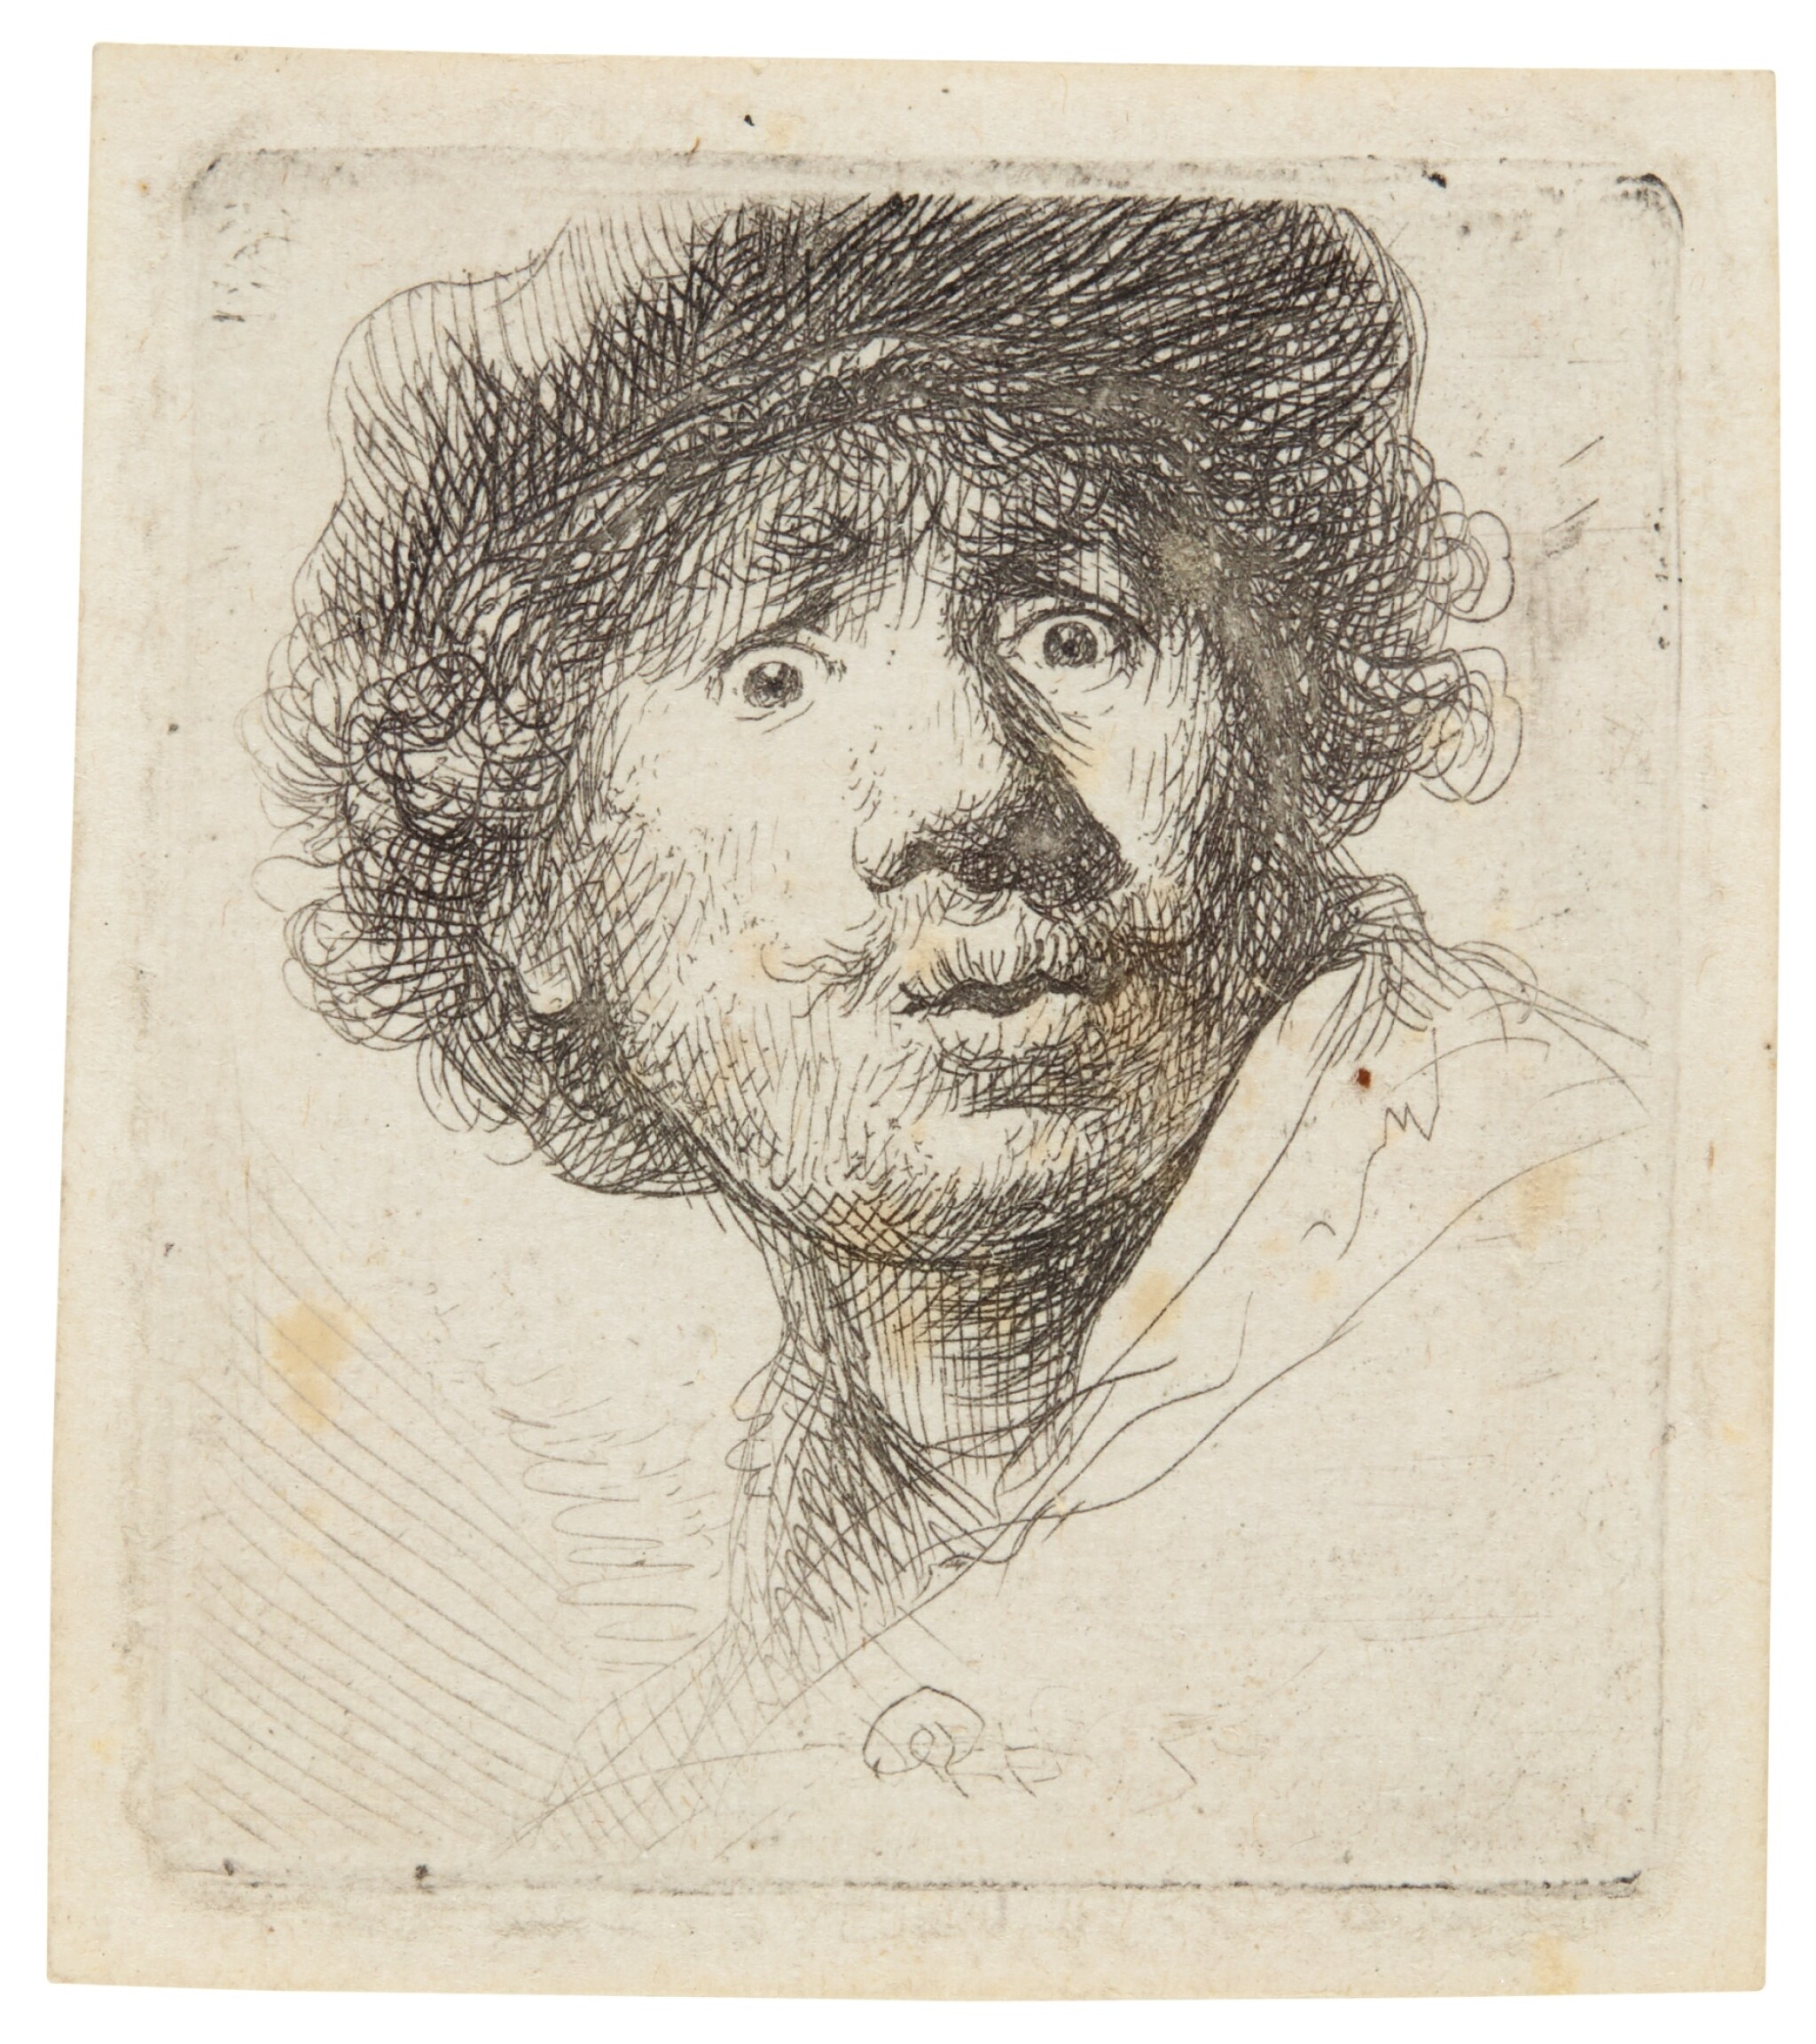 View full screen - View 1 of Lot 60. REMBRANDT HARMENSZ. VAN RIJN  |  SELF-PORTRAIT IN A CAP, WIDE-EYED AND OPEN-MOUTHED (B., HOLL. 320; NEW HOLL. 69; H. 32).